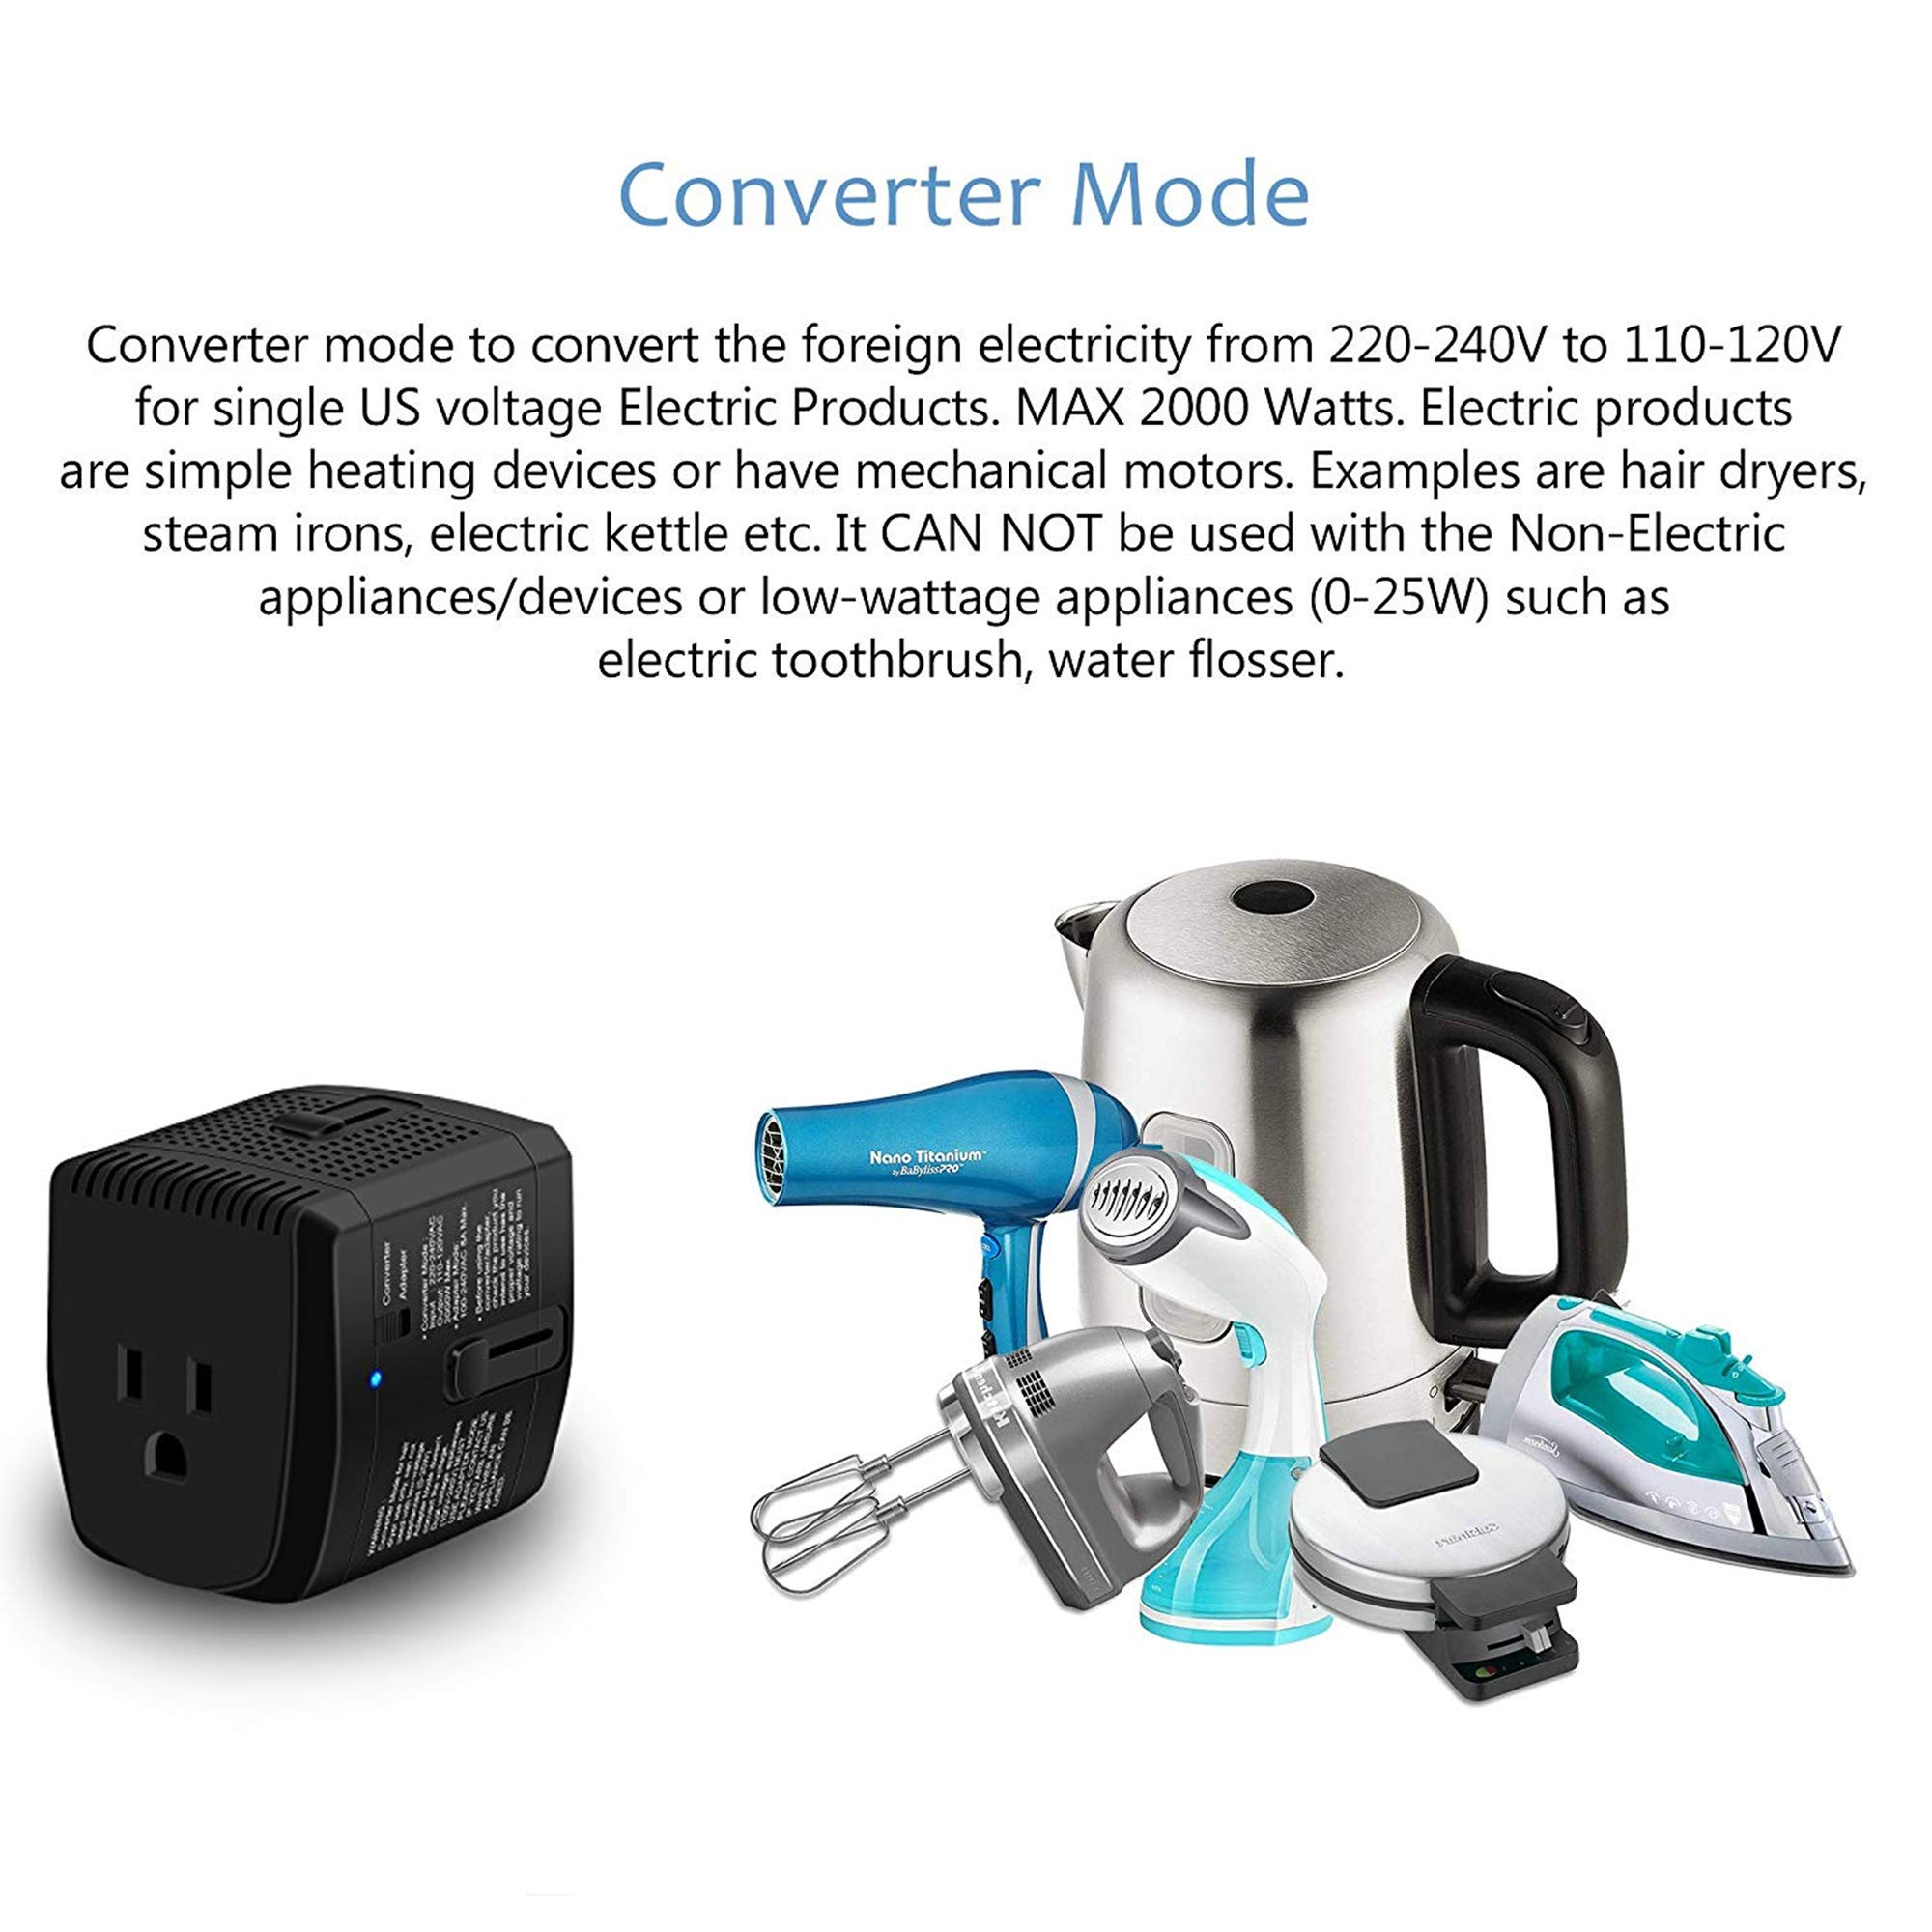 2000W Step Down Voltage Converter 220V to 110V and Universal Travel Plug Adapter Combo for Hair Dryer Steam Iron Cell Phone Laptop MacBook - Plug Adaptor US to Europe, UK, AU, Asia Over 150 Countries by ElecLead (Image #2)